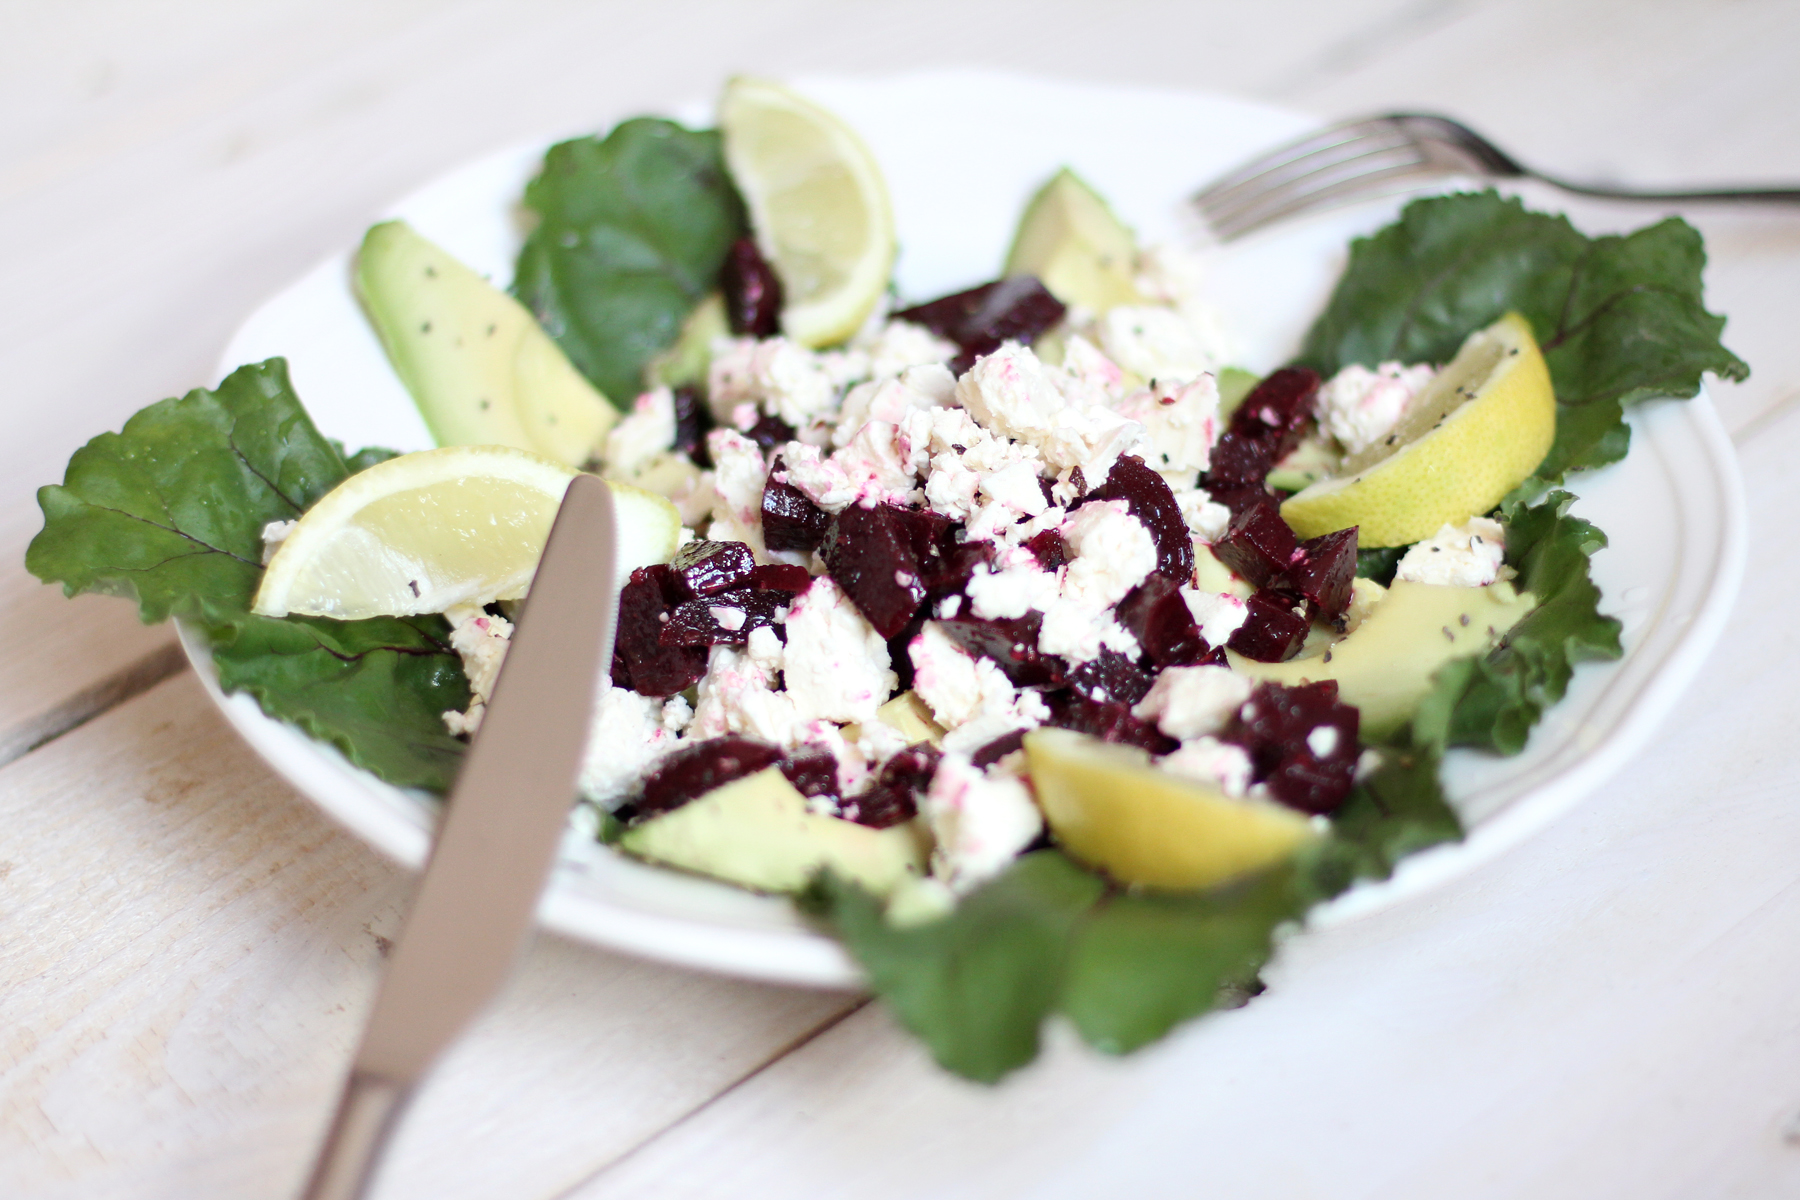 <!--:en-->Fresh Beet, Feta & Avocado Salad<!--:--><!--:de-->Rote Beete, Feta & Avocado Salat<!--:-->